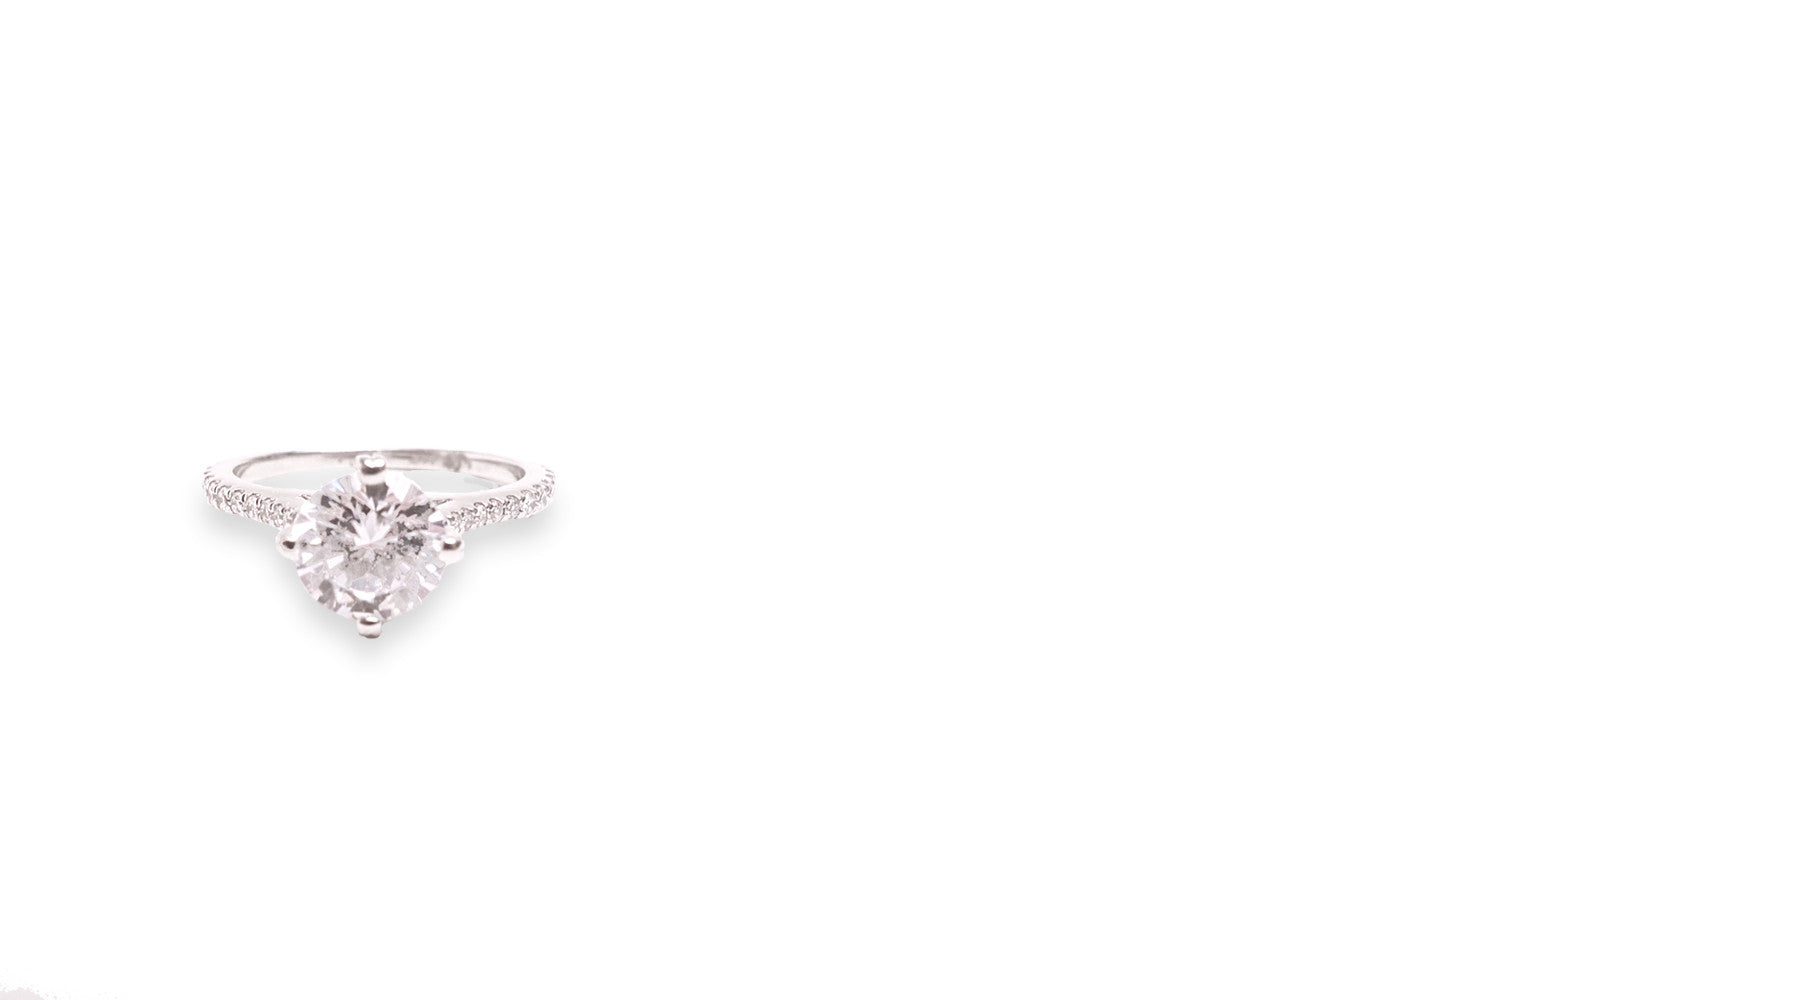 Four Prong Solitaire Engagement Ring with Diamond Pave